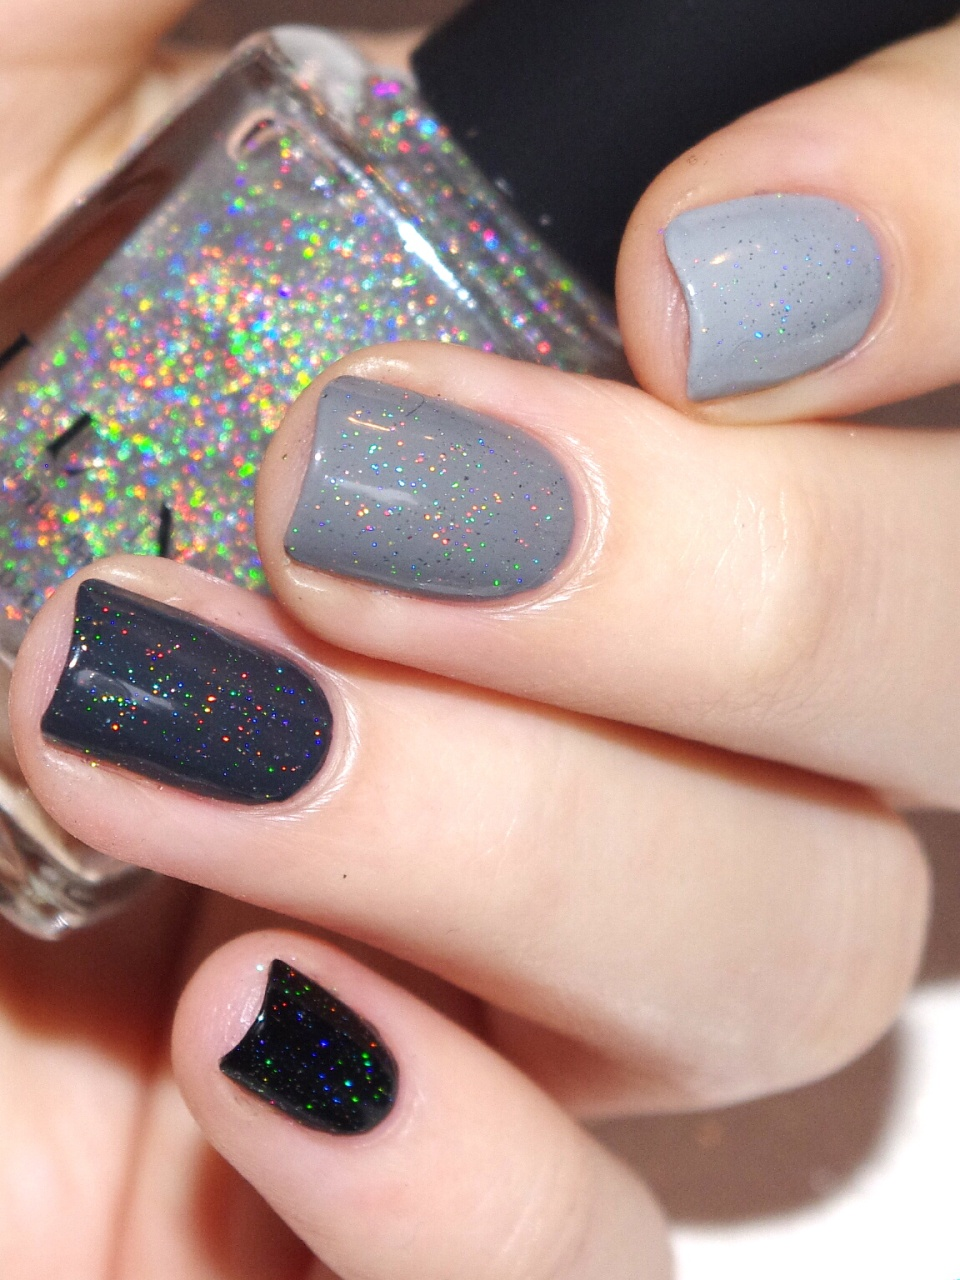 Bulleuw : ILNP Winter 2015 51